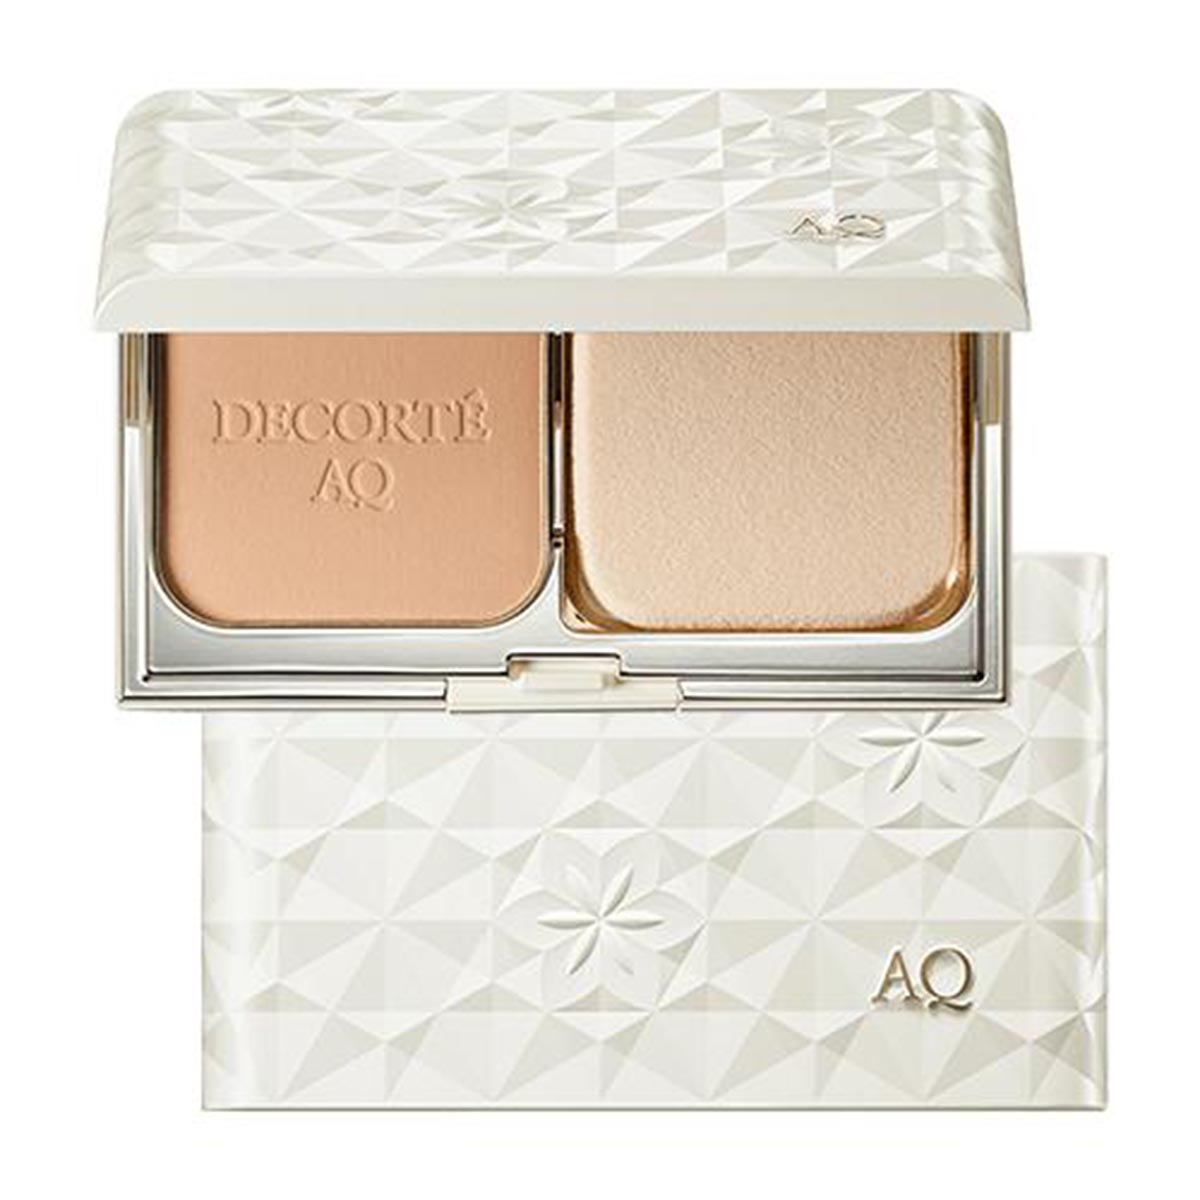 Decorte aq radiant glow powder foundation 201 11gr